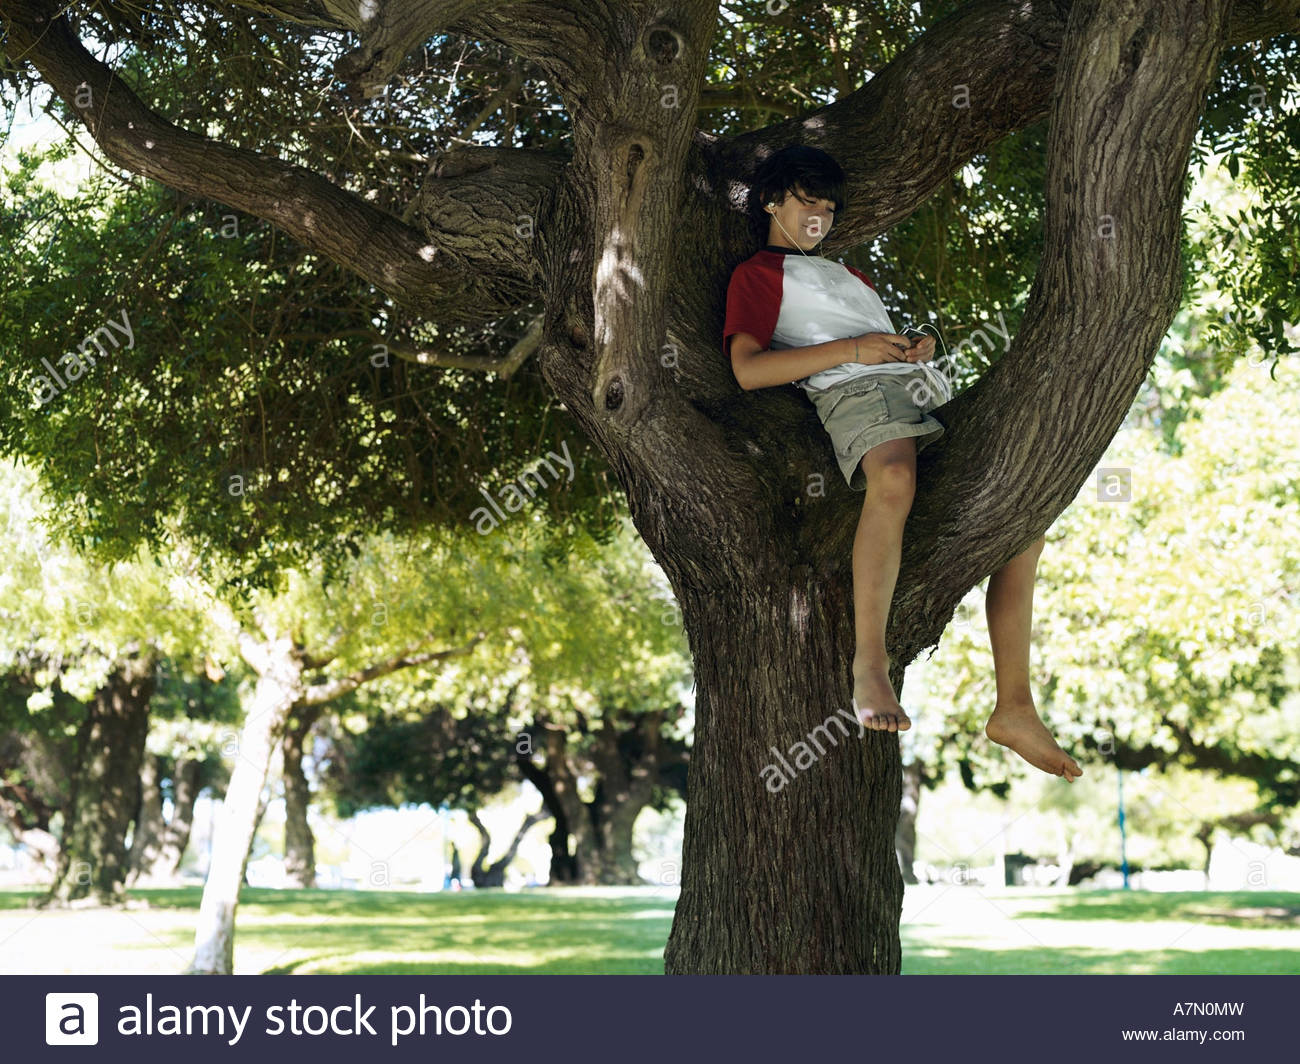 Boy 10 12 sitting in tree in park listening to MP3 player smiling - Stock Image